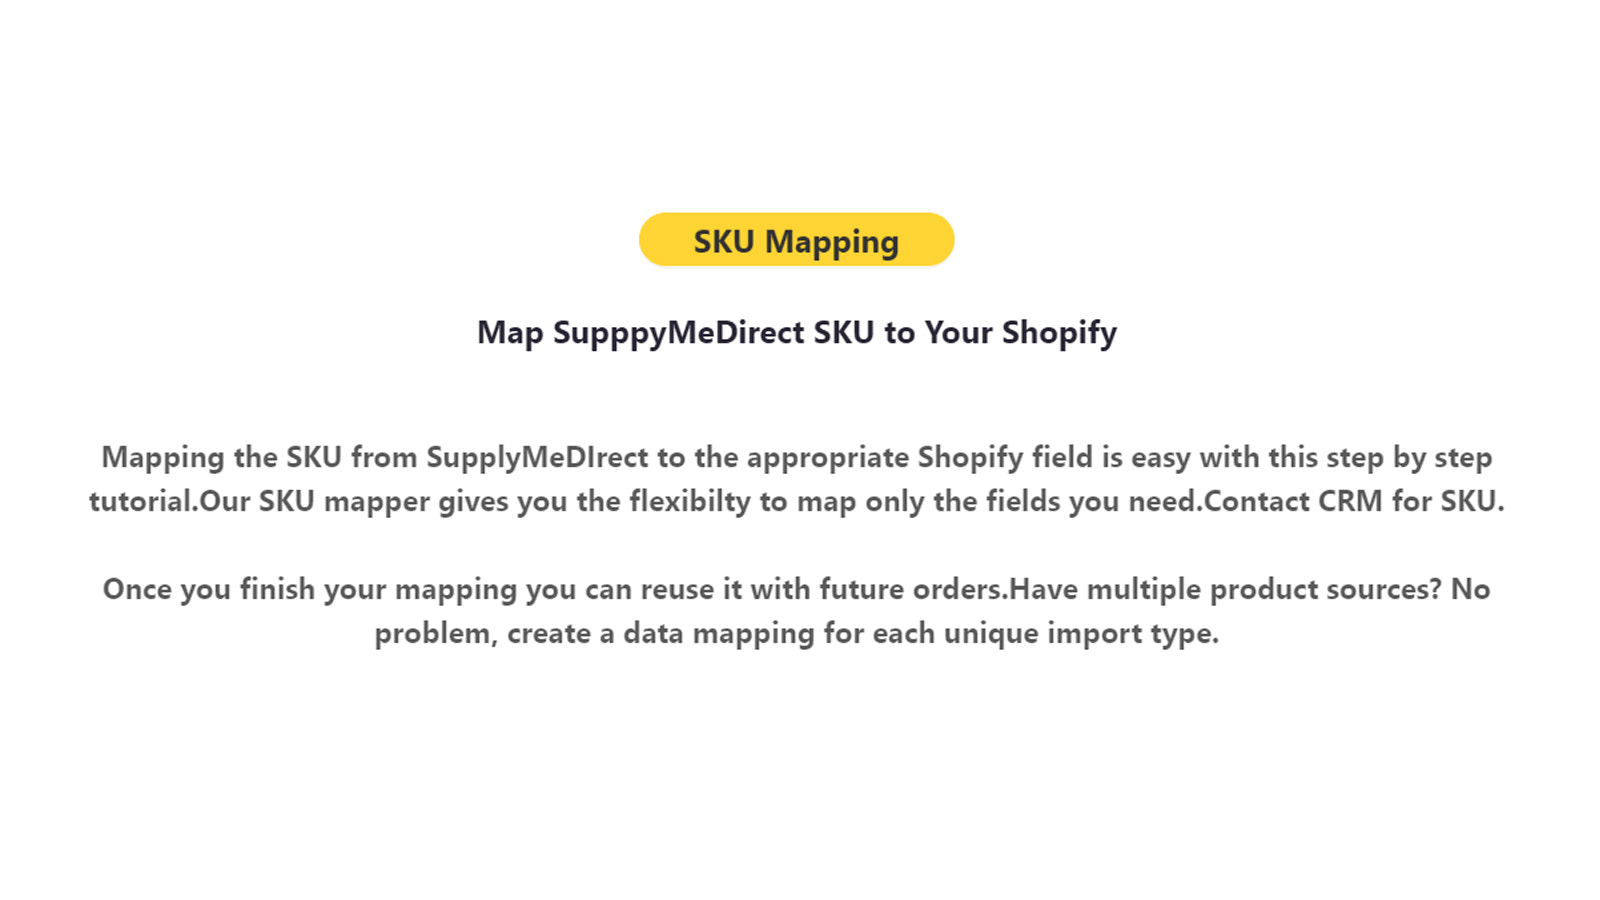 Map SupppyMeDirect SKU to Your Shopify